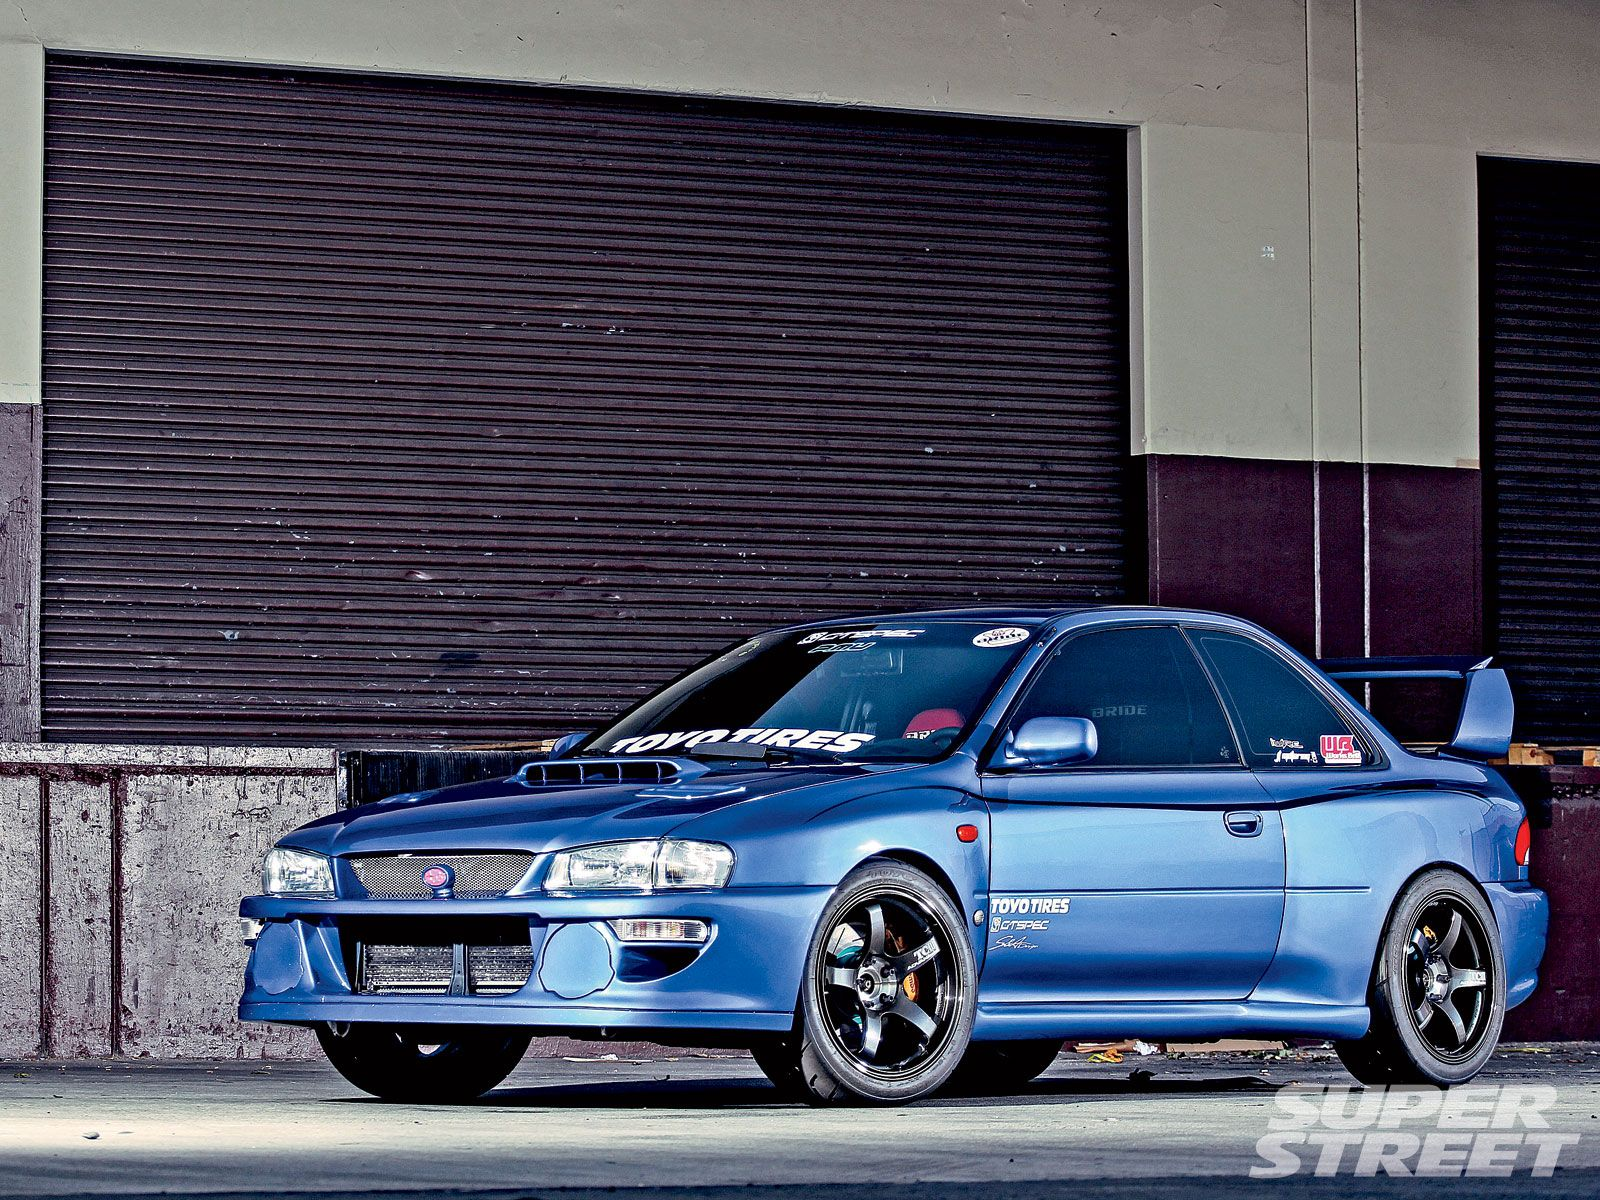 1999 subaru impreza 2.5rs - 22b styling with a l'aunsport 99 22b